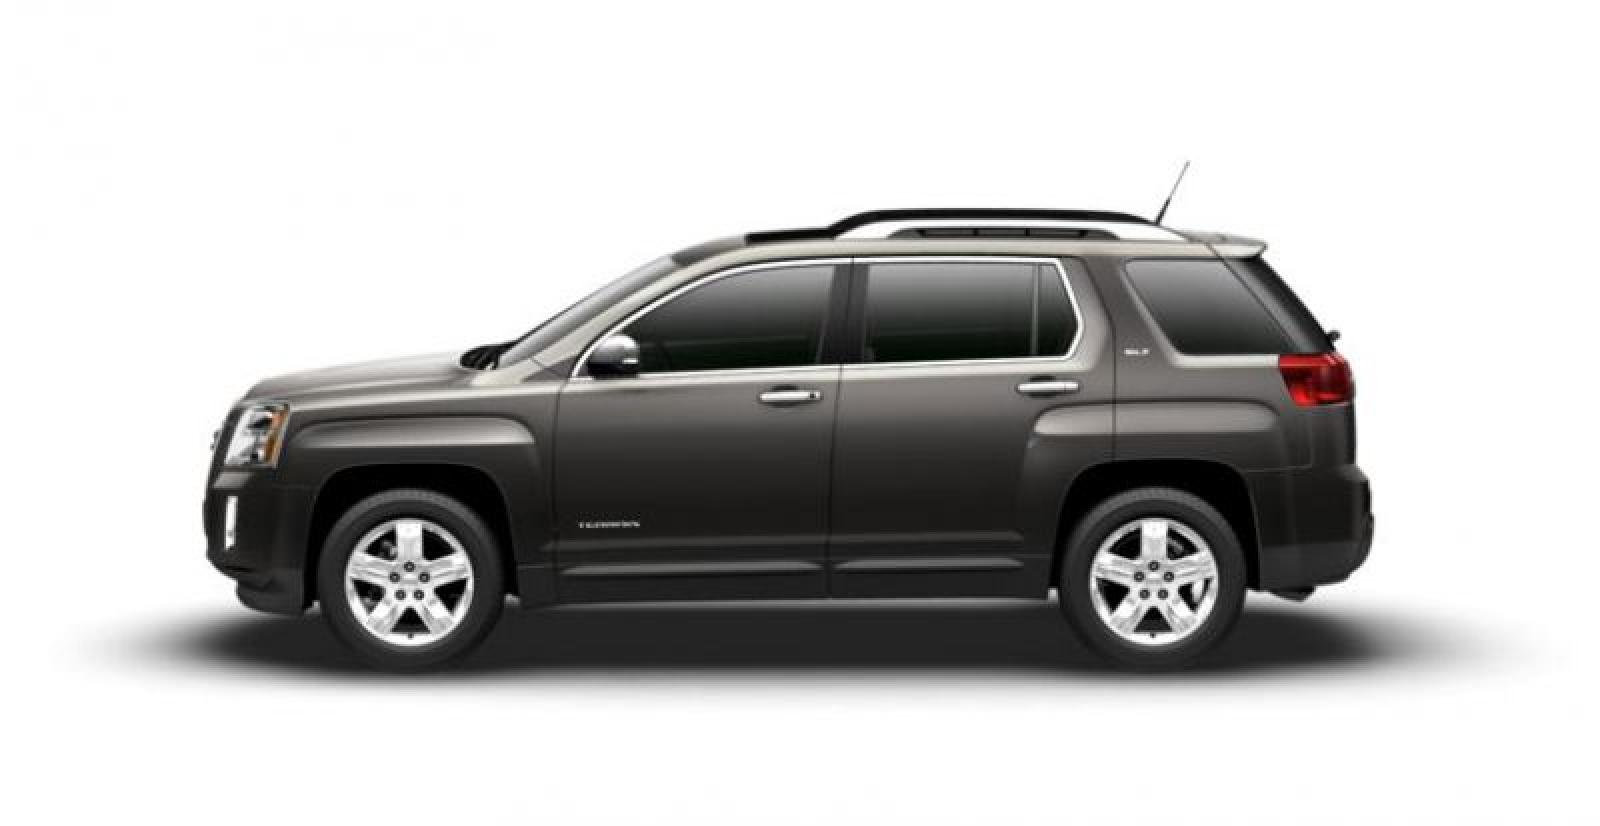 2013 gmc terrain information and photos zombiedrive. Black Bedroom Furniture Sets. Home Design Ideas